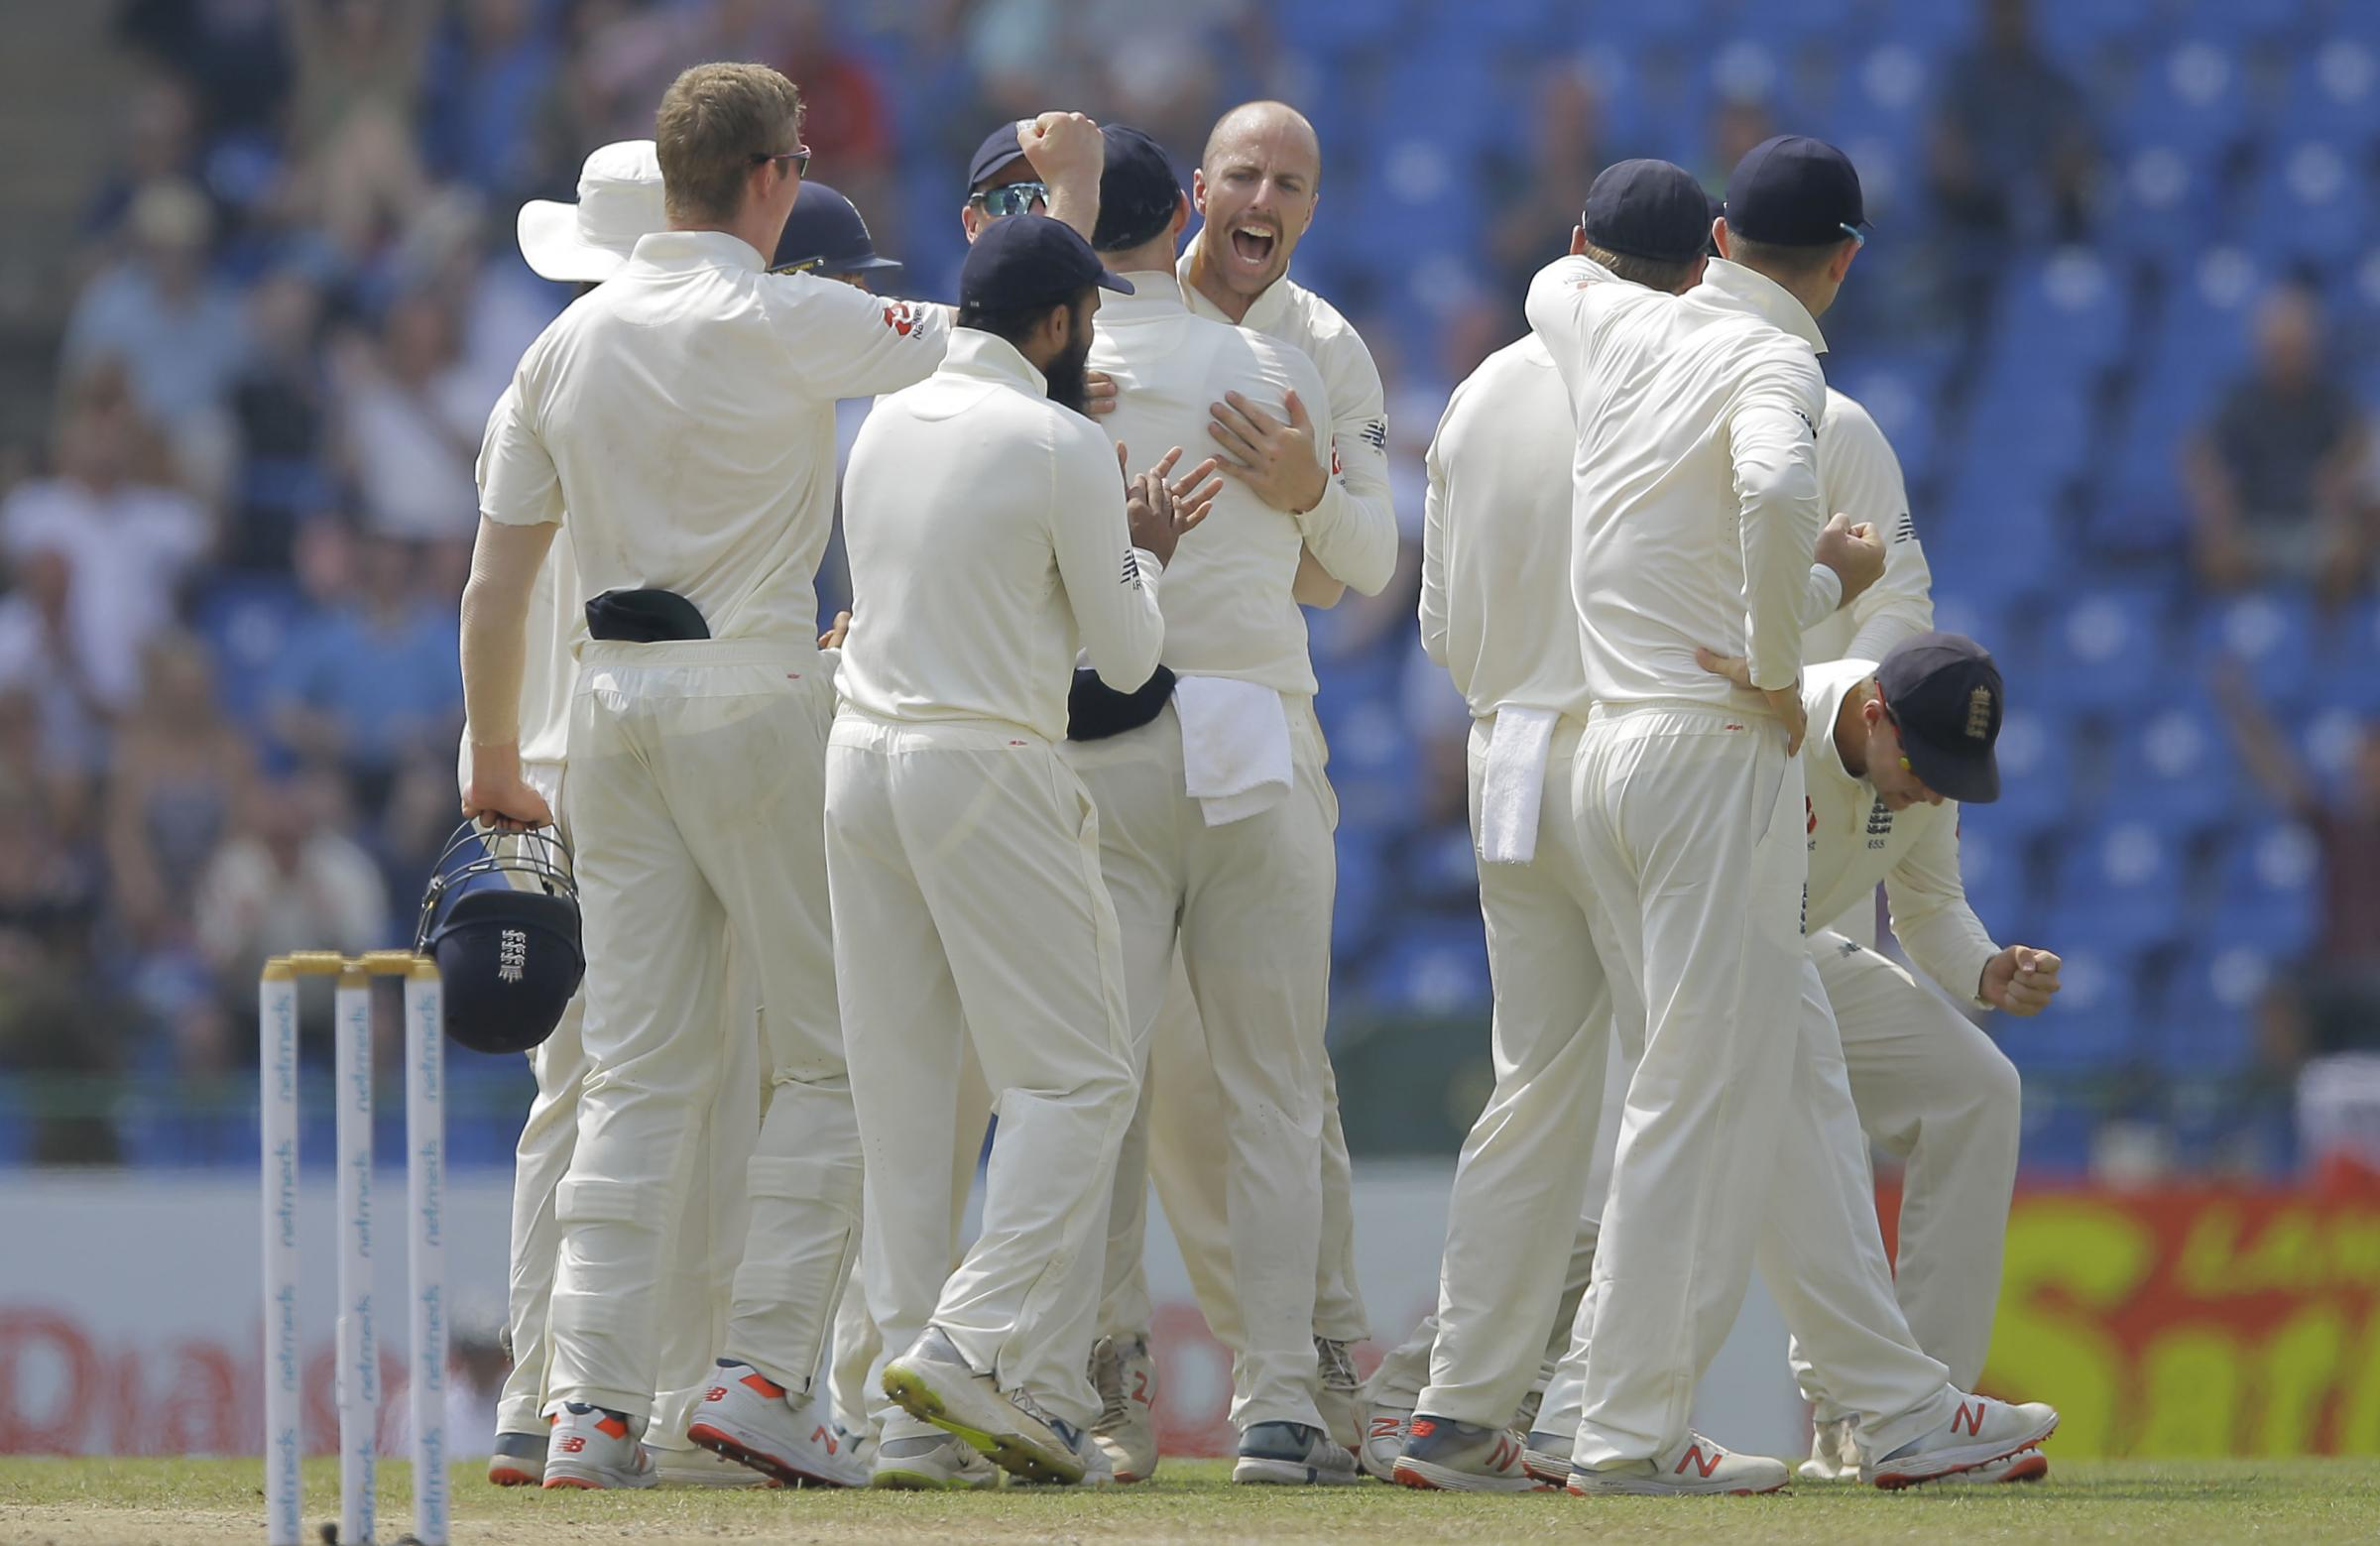 KEY ROLE: England's Jack Leach, centre, celebrates along with team-mates after taking the wicket of Sri Lanka's Kusal Mendis. Pic: PA Wire